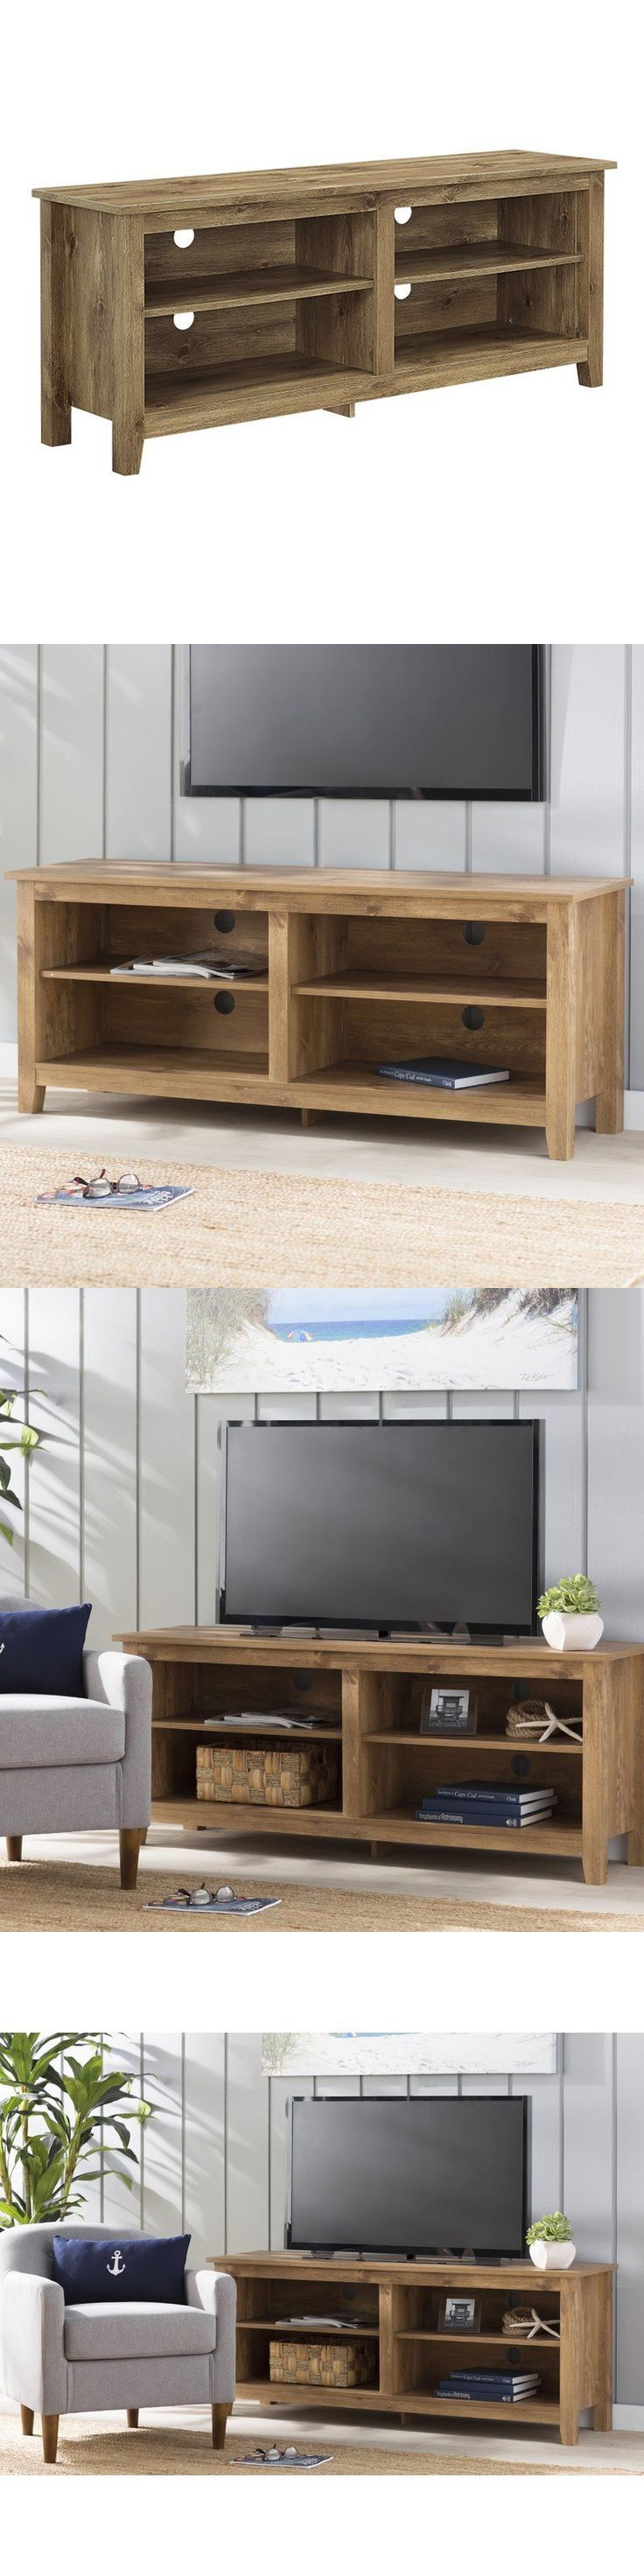 best  tv stand with storage ideas on pinterest  media storage  - entertainment units tv stands  walker edison  inch wood tv standwith storage space